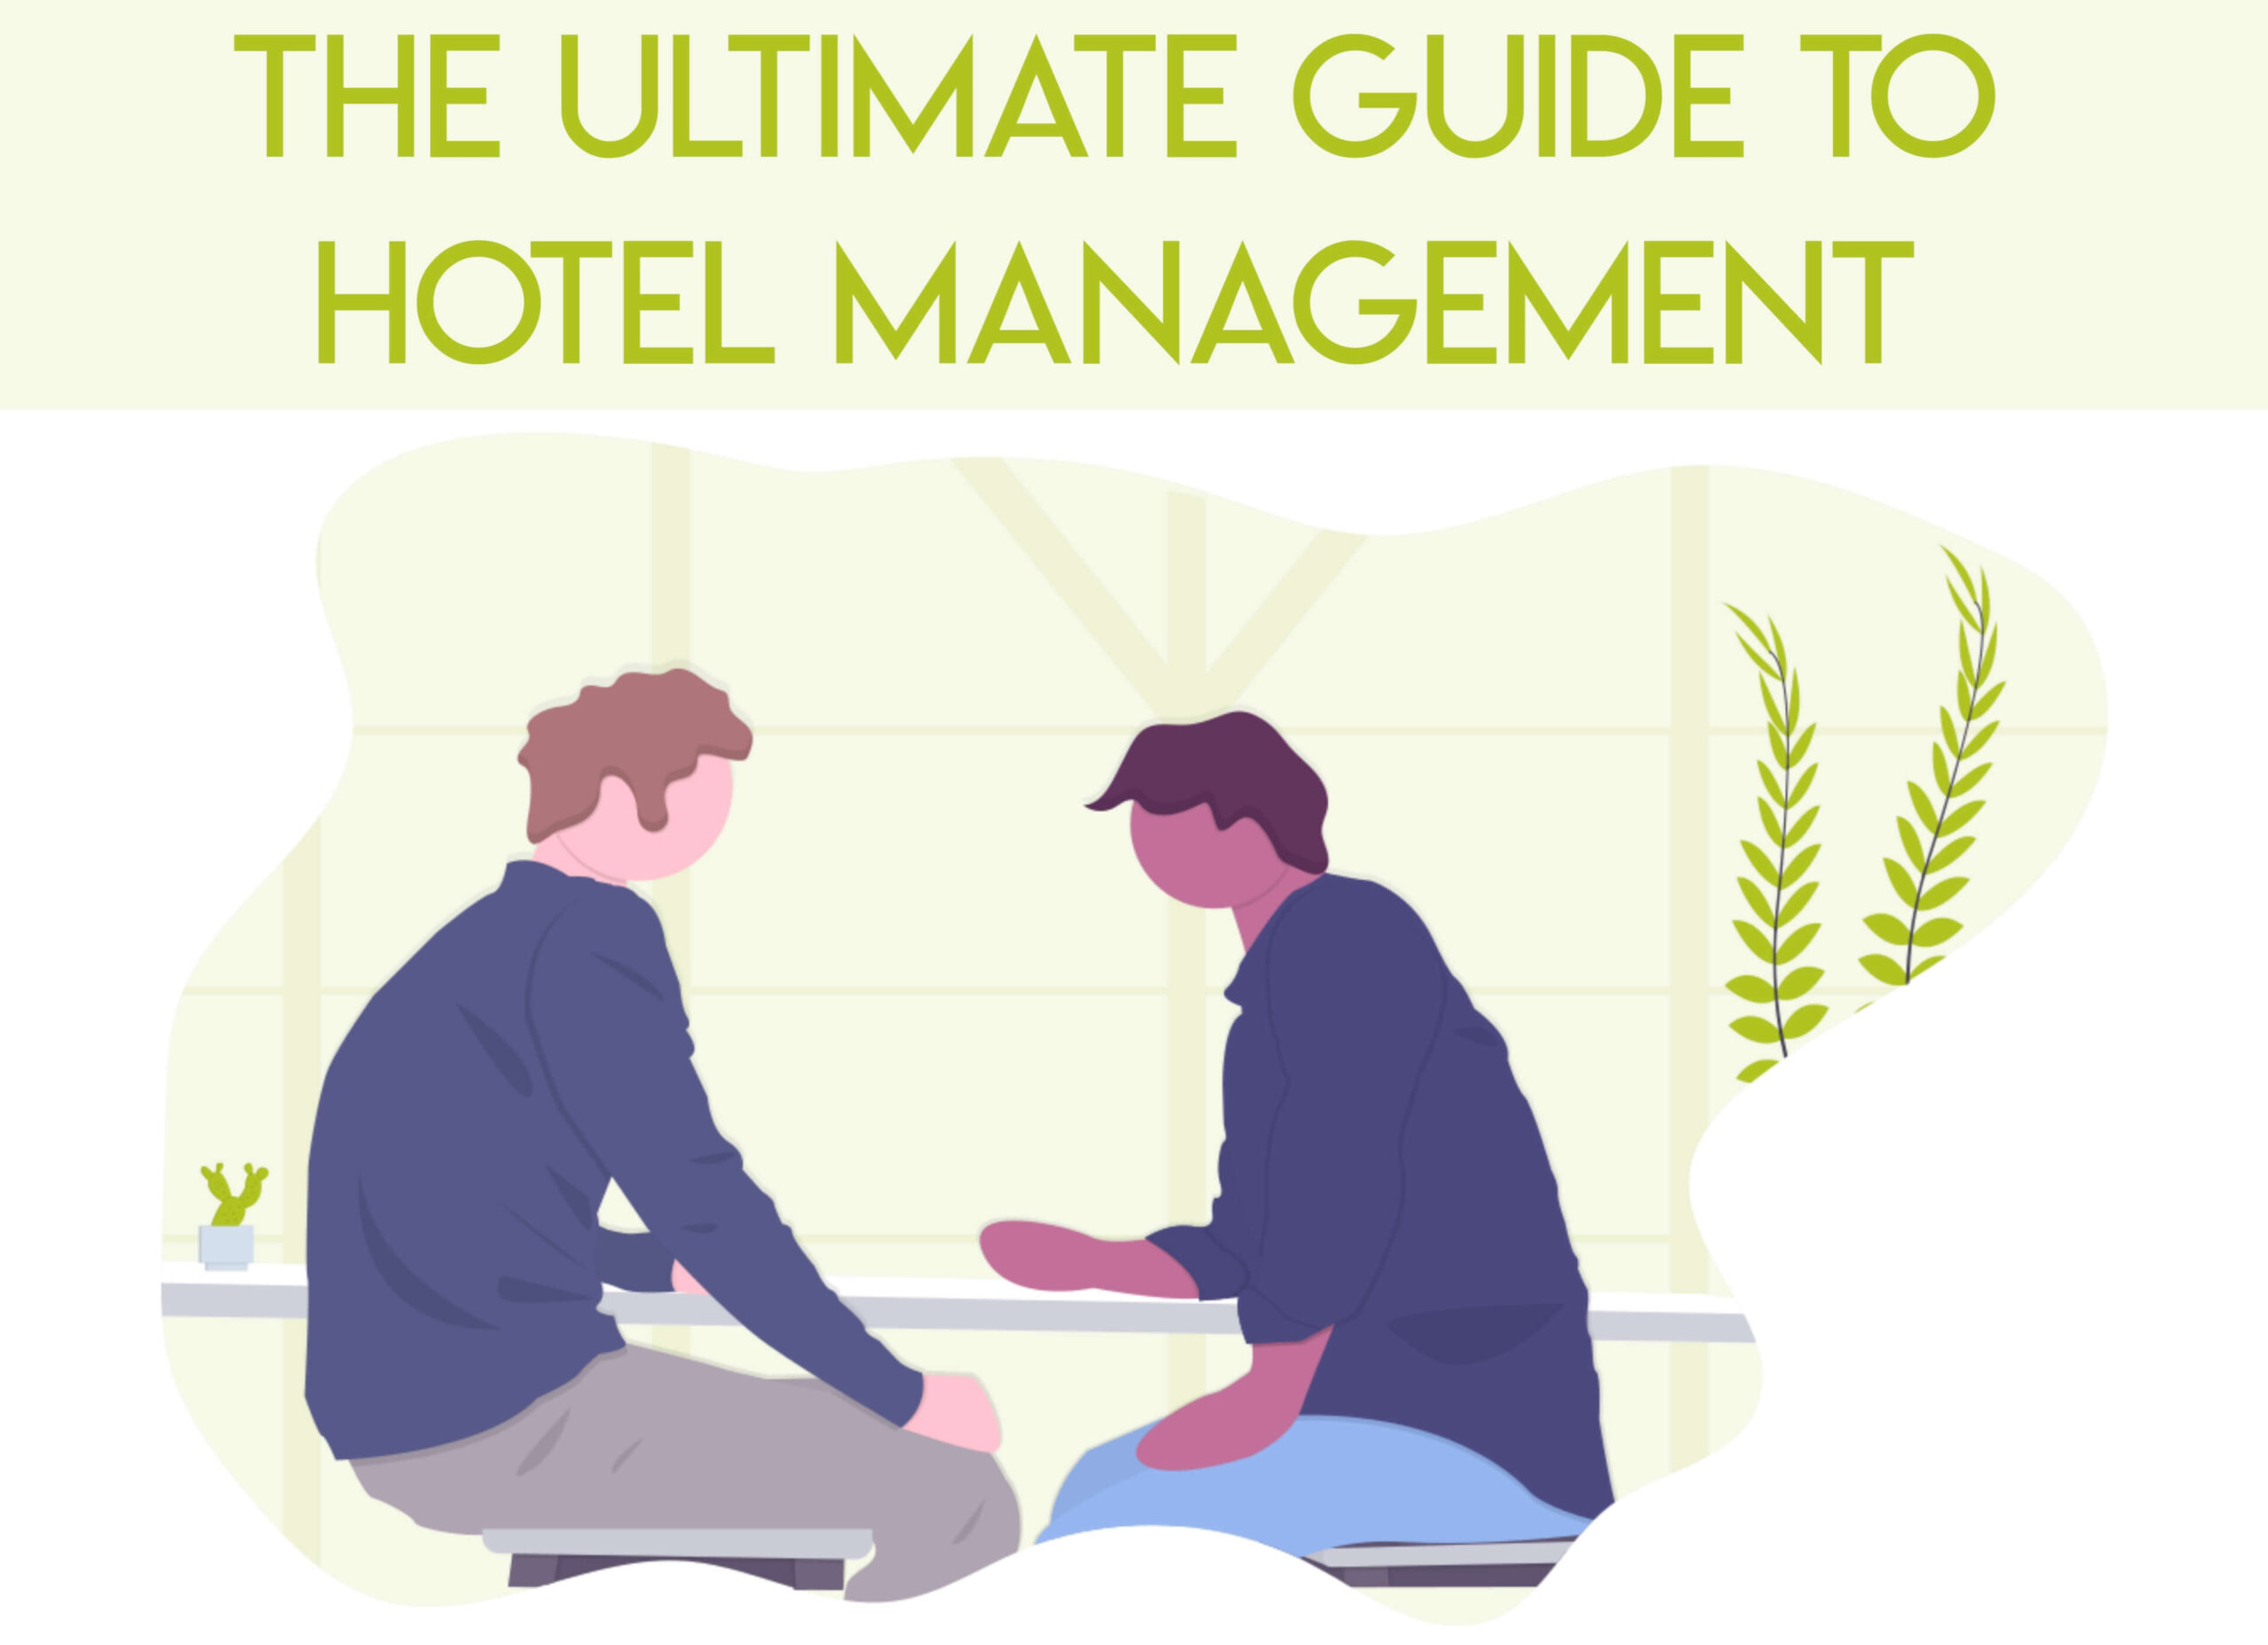 hotel management guide